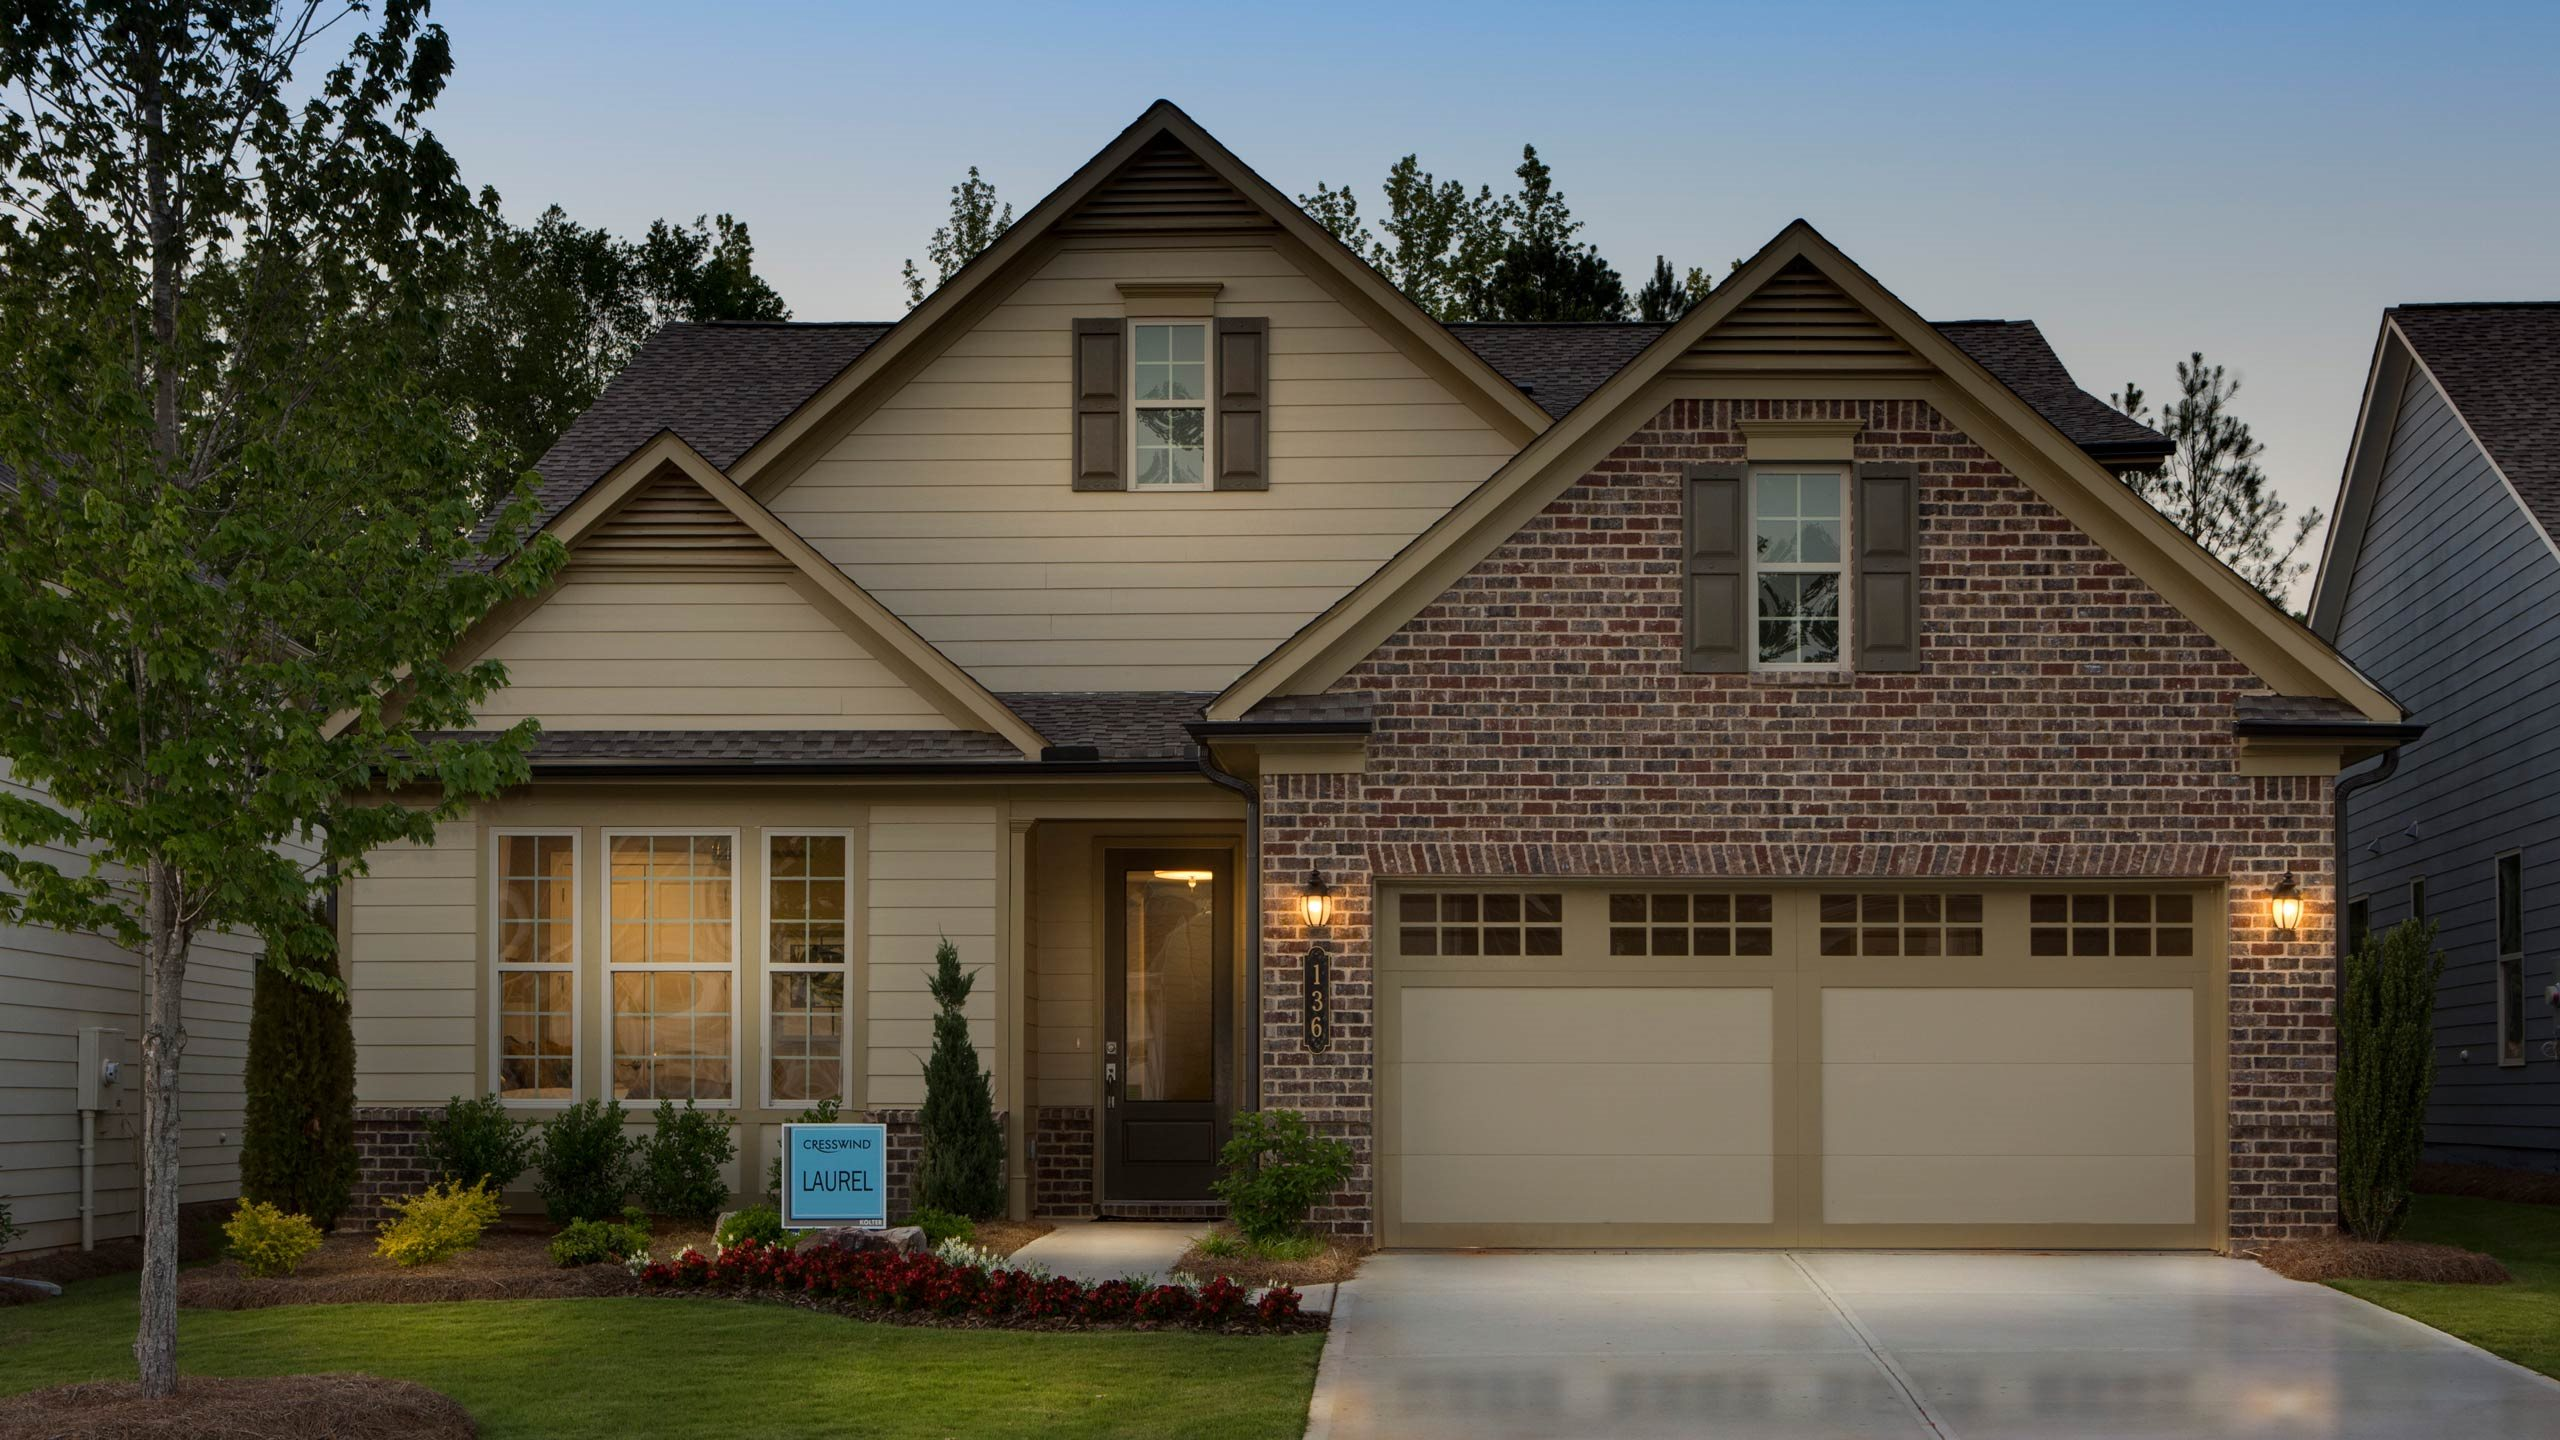 Cresswind Peachtree City Laurel | New Home near Atlanta by Kolter Homes